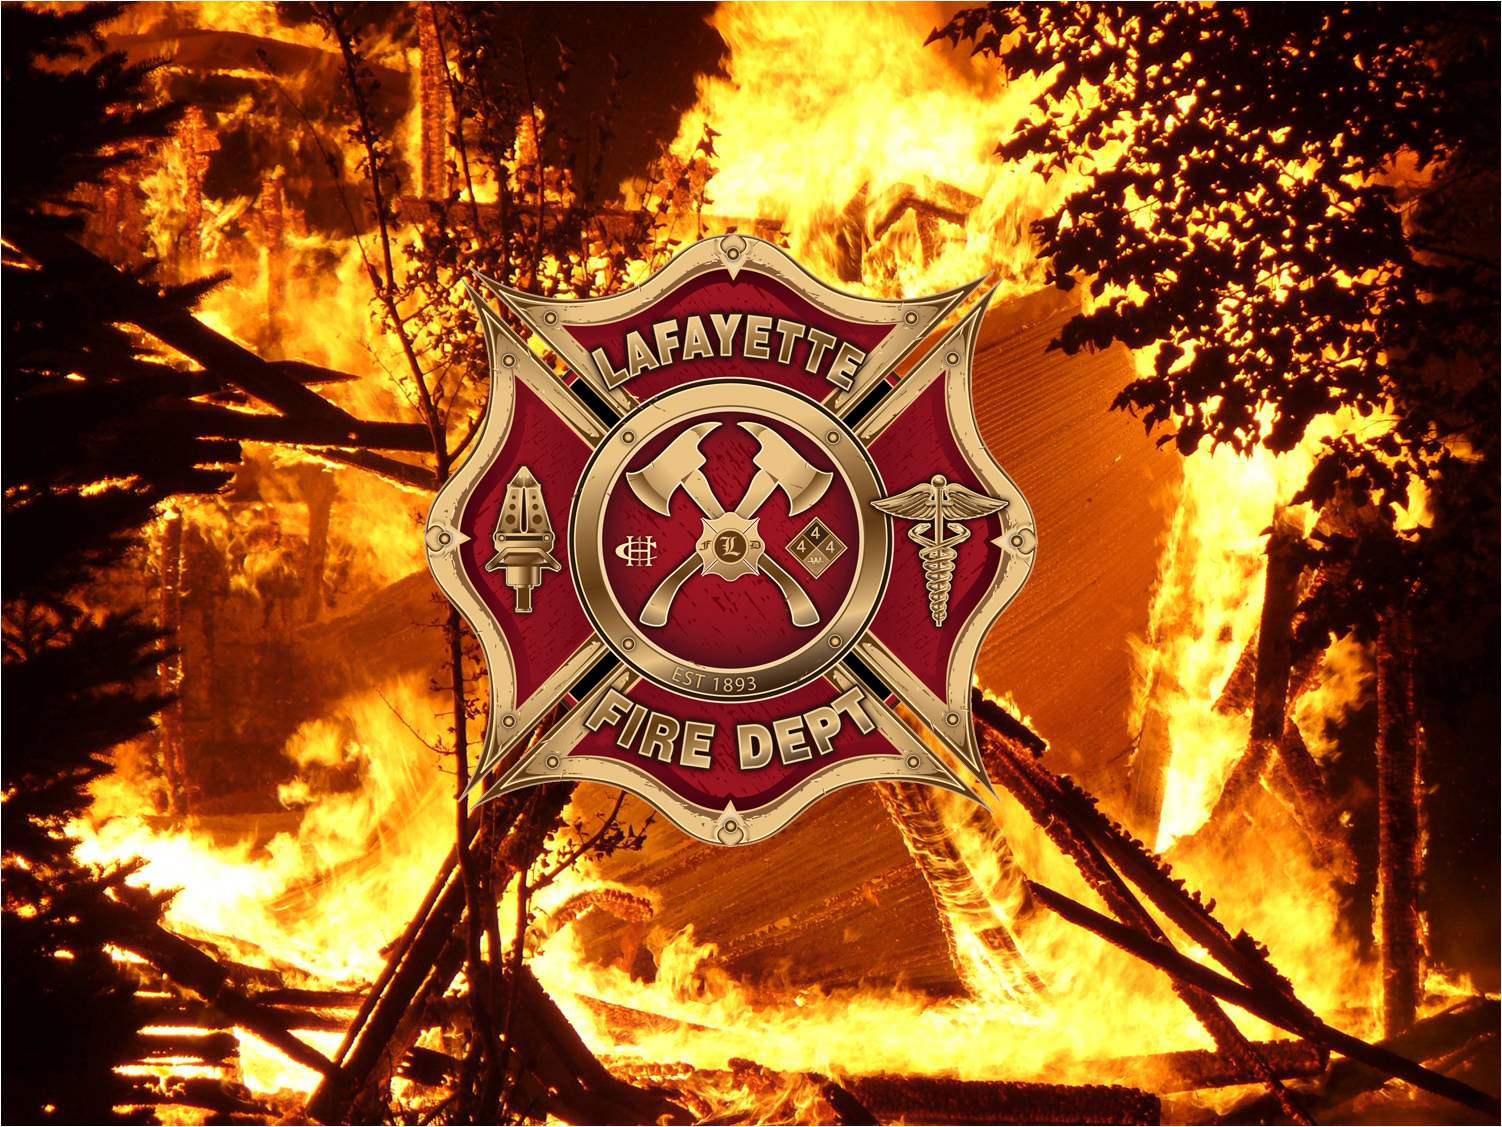 Lafayette Fire Department Logo